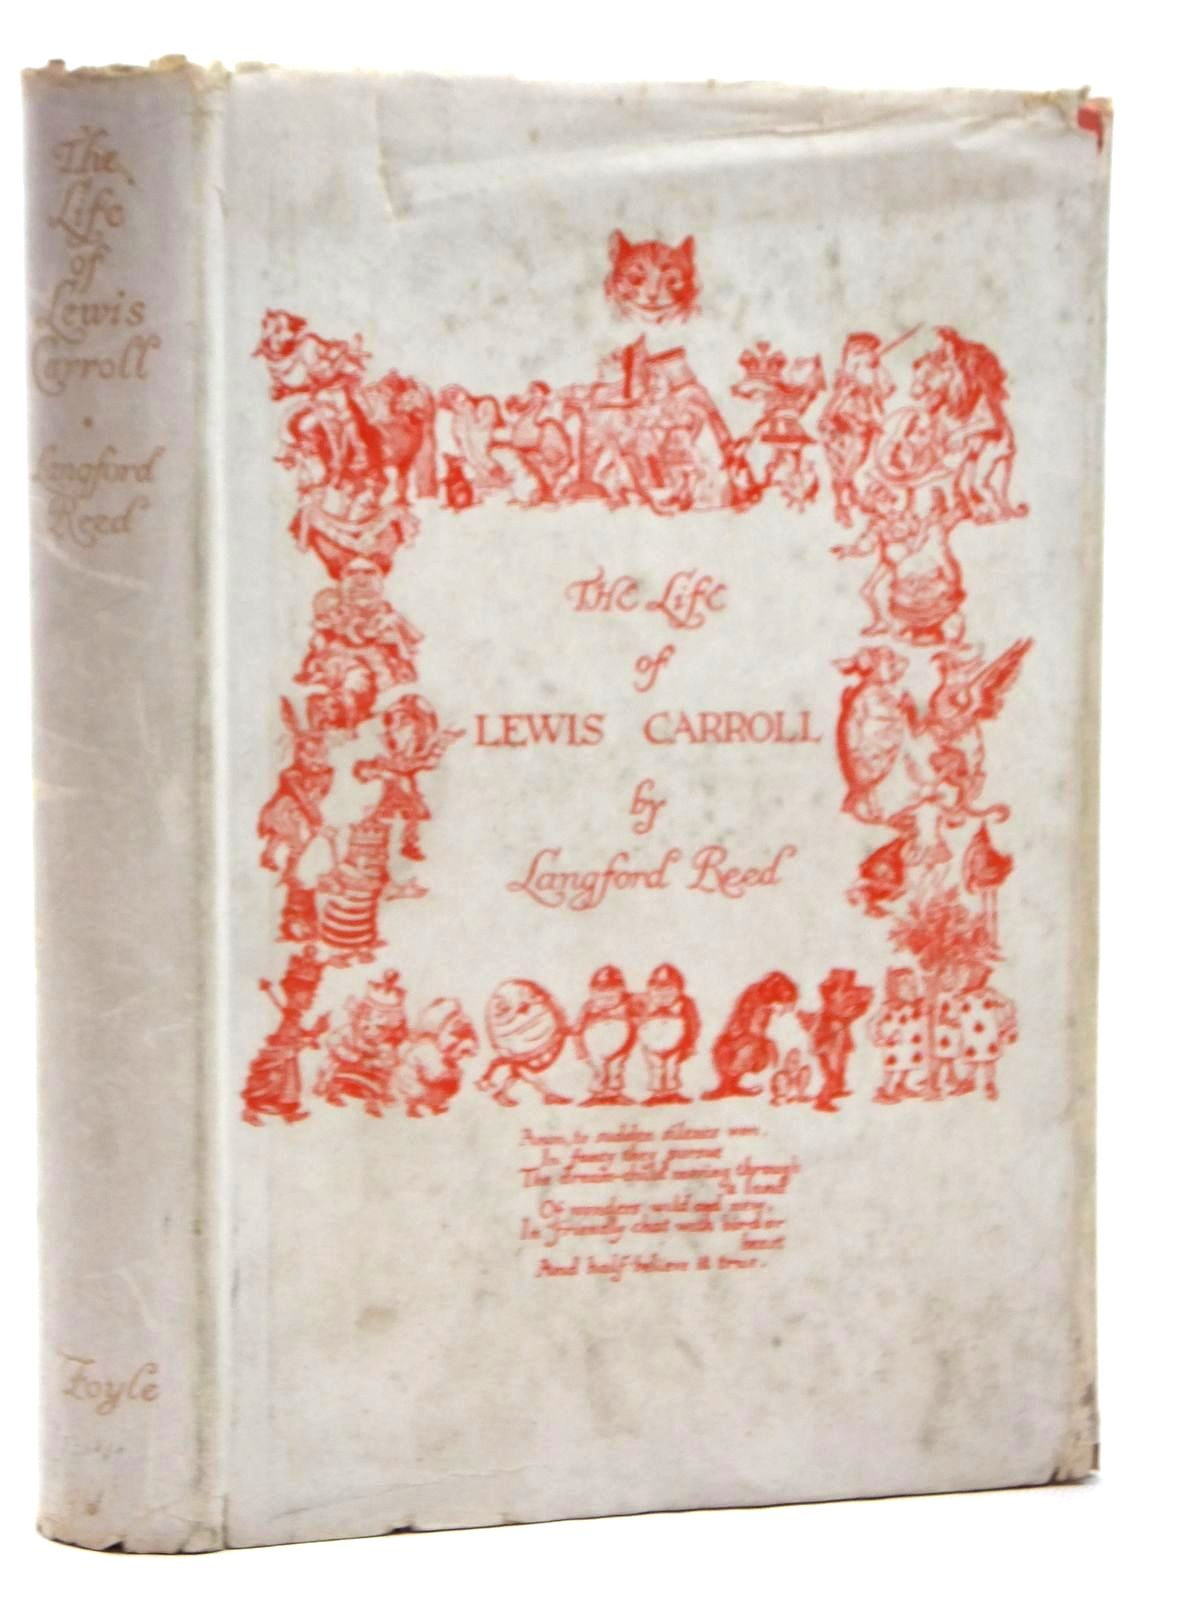 Photo of THE LIFE OF LEWIS CARROLL written by Carroll, Lewis<br />Reed, Langford published by W. &amp; G. Foyle Ltd. (STOCK CODE: 1609545)  for sale by Stella & Rose's Books